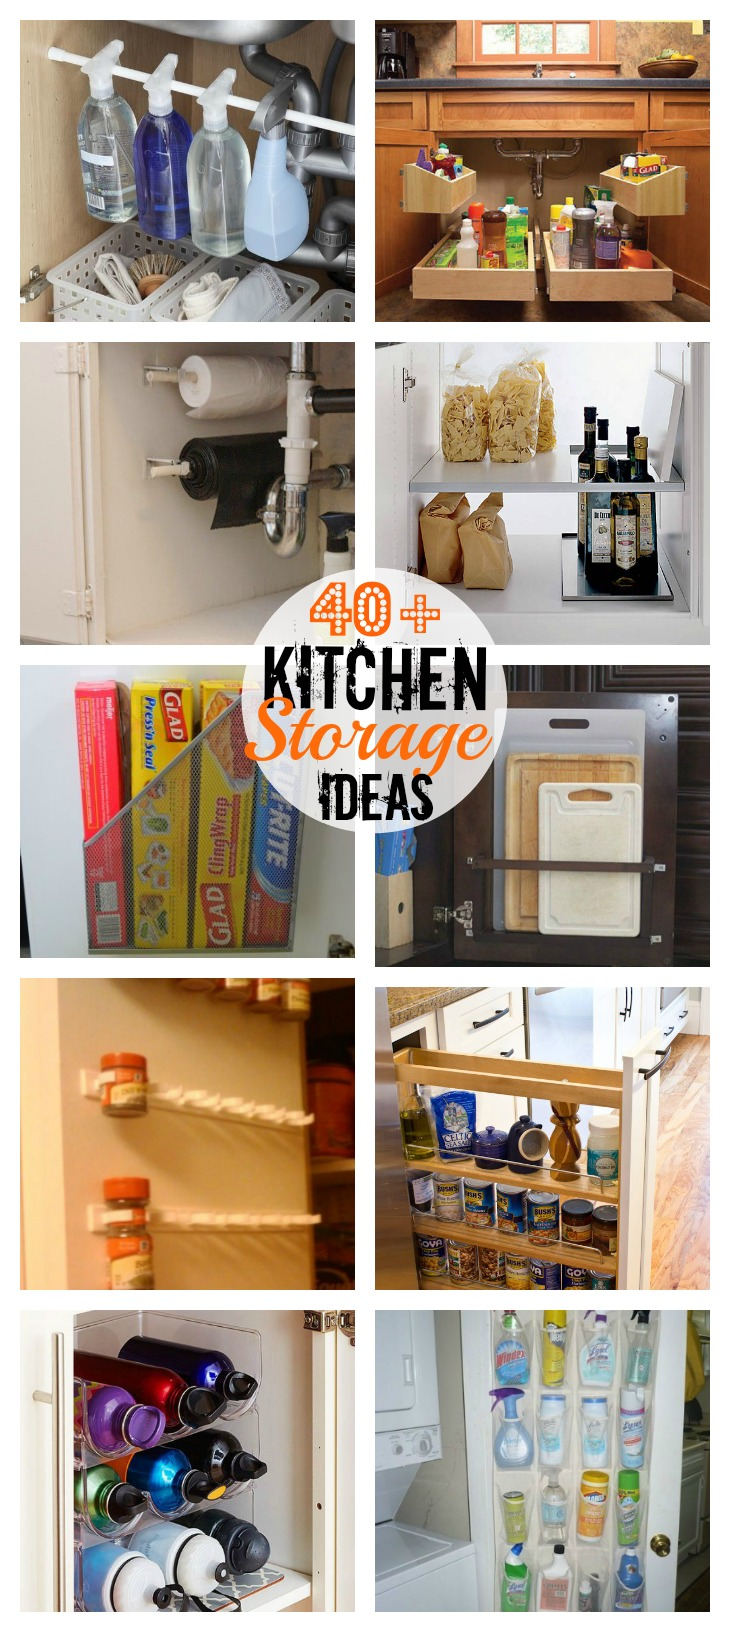 40+ Great Kitchen Storage Ideas